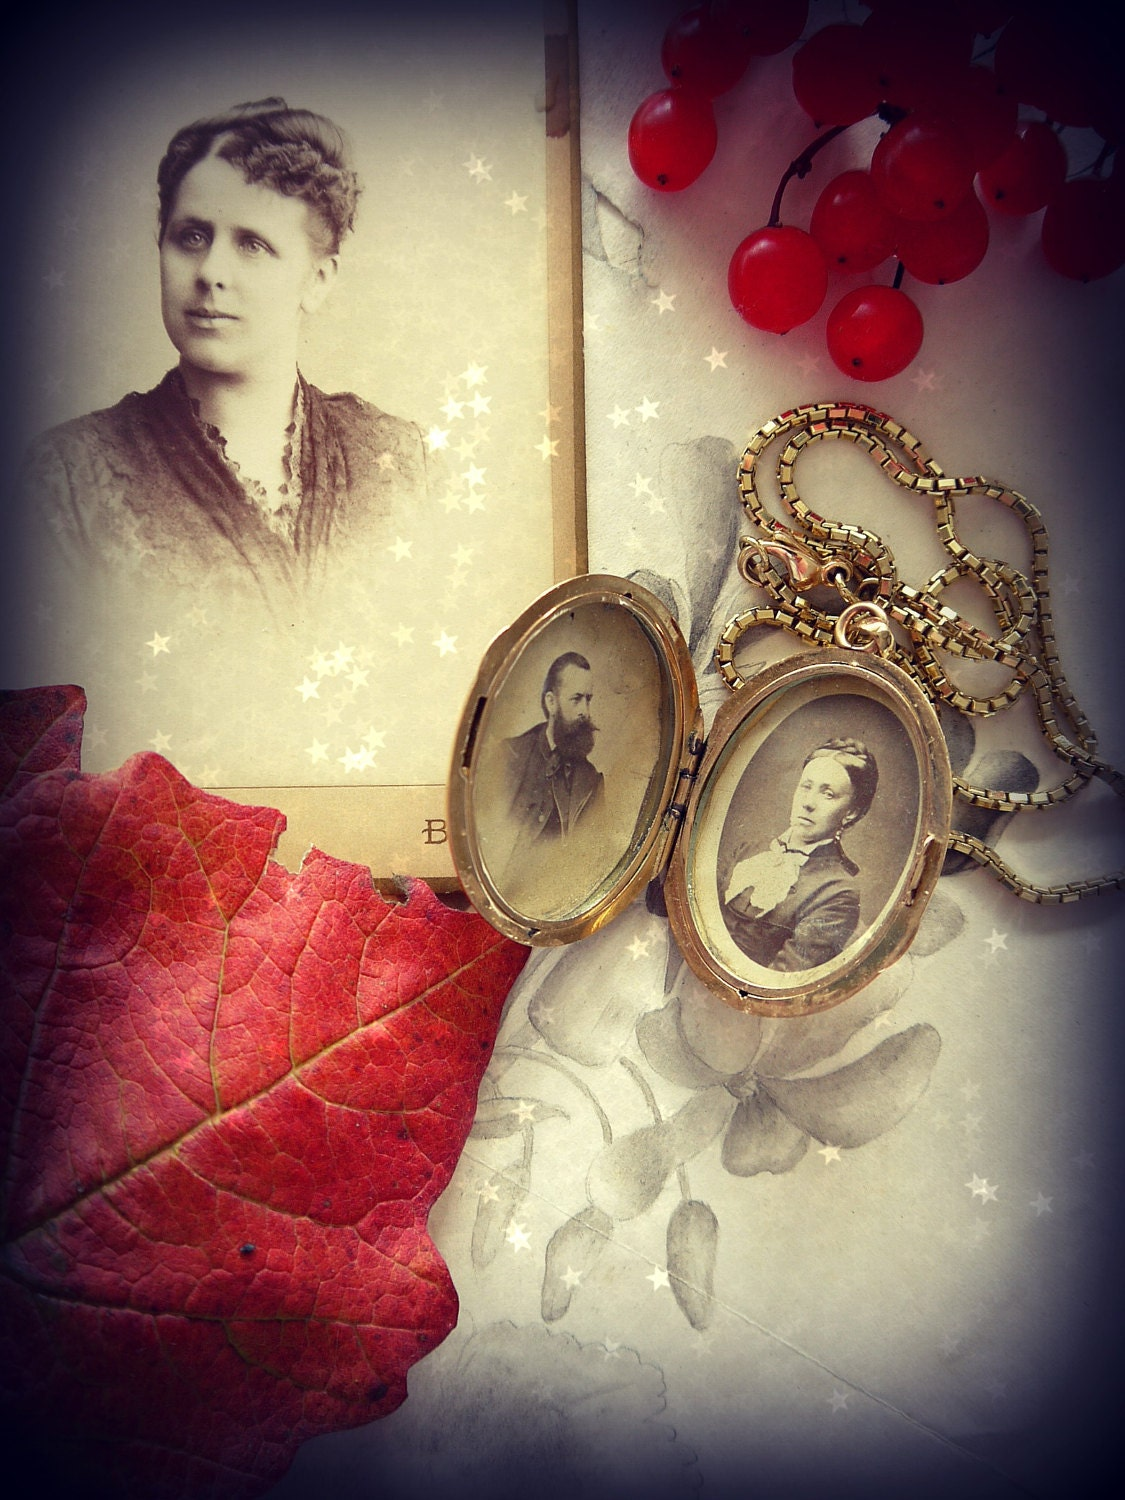 On this picture, you can see Paulinas parents inside the locket. They look quite severe though! But never mind, I think, most people made such faces, when a photograph was taken from them.